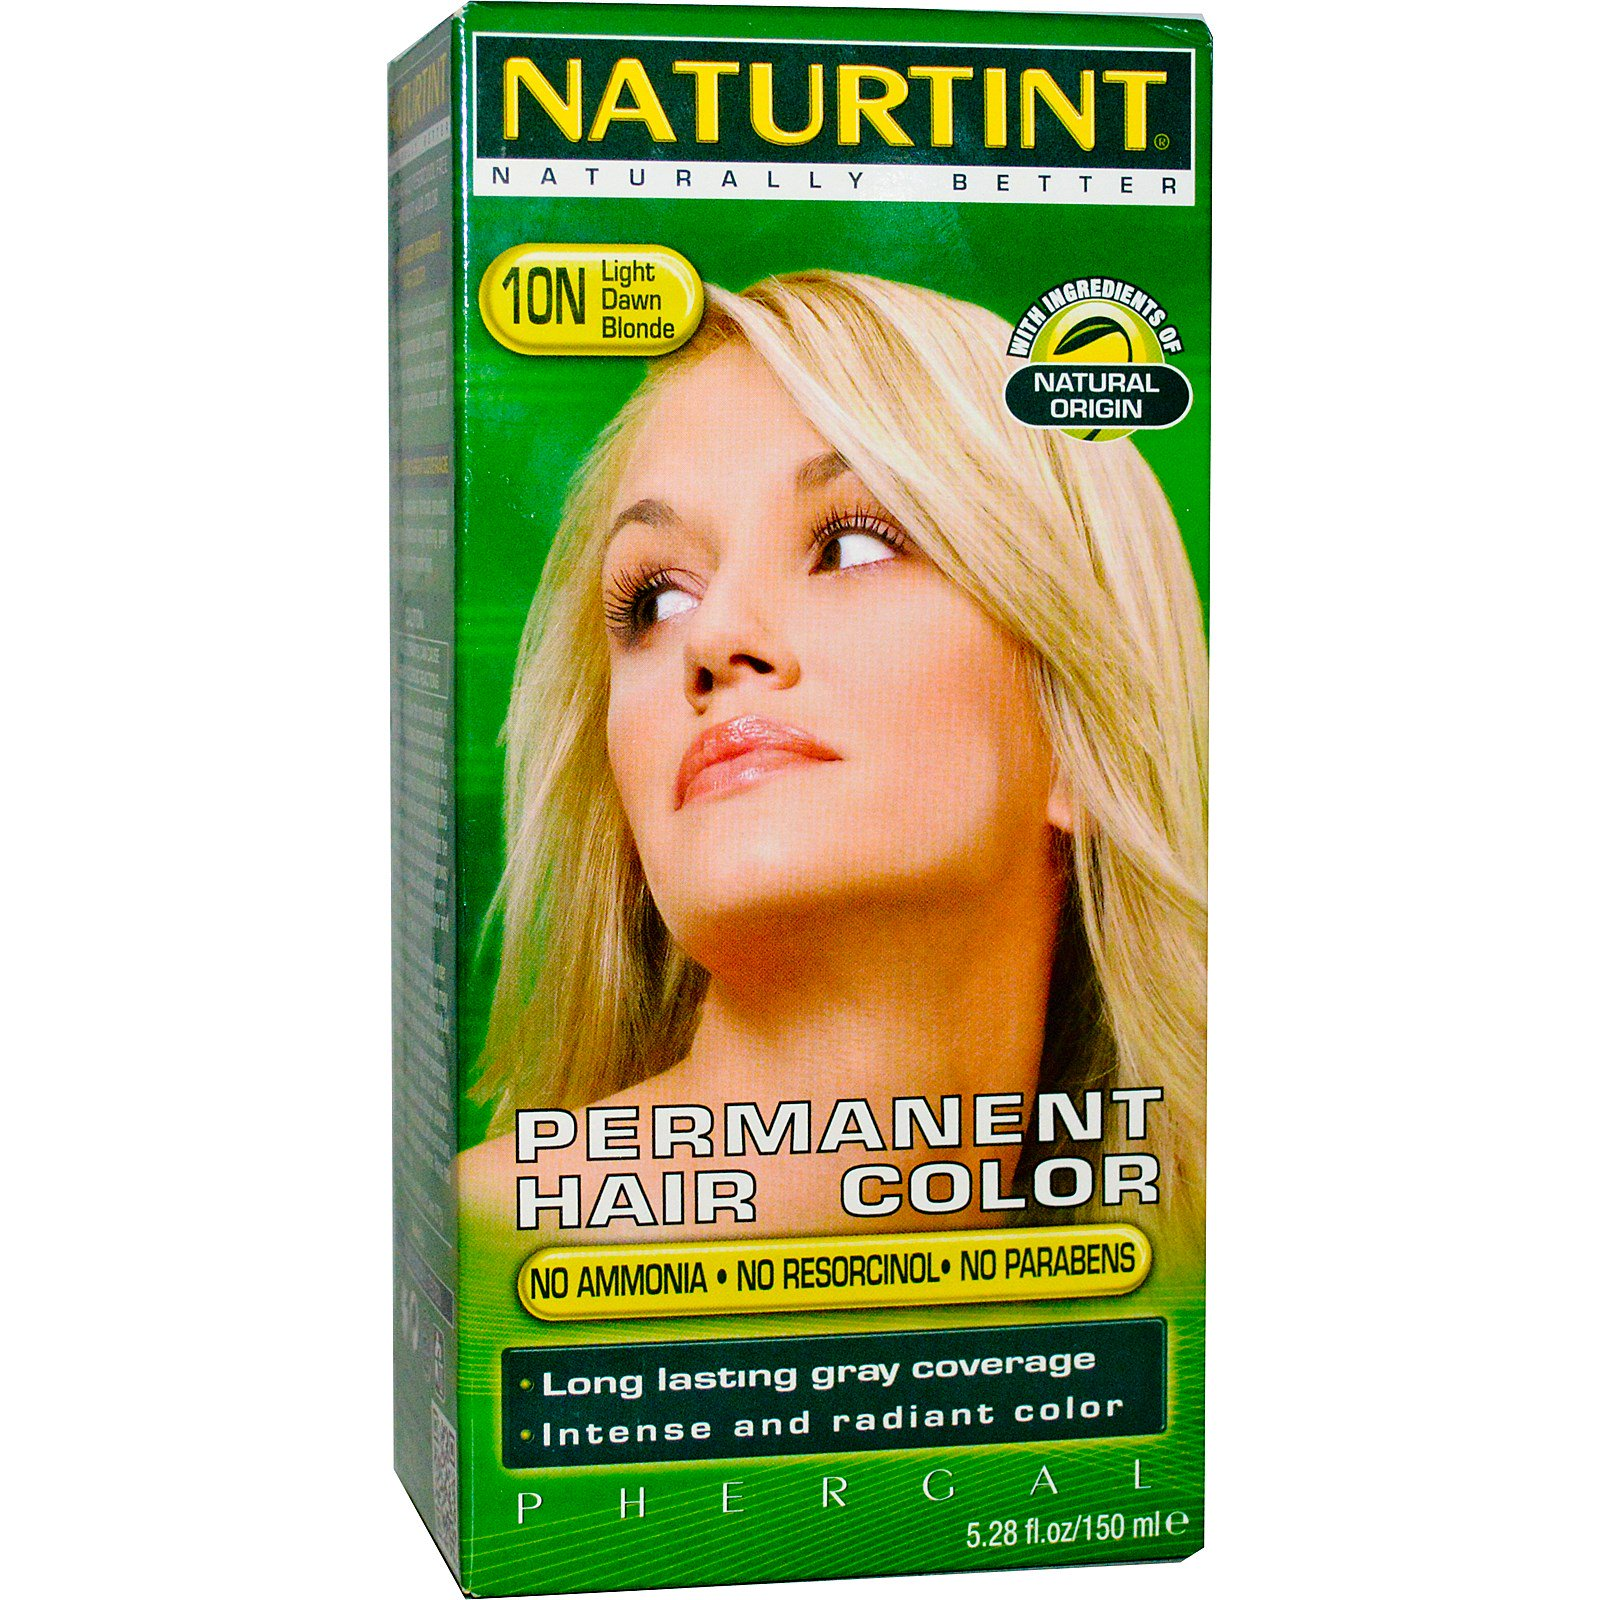 Naturtint Permanent Hair Color 10n Light Dawn Blonde 528 Fl Oz